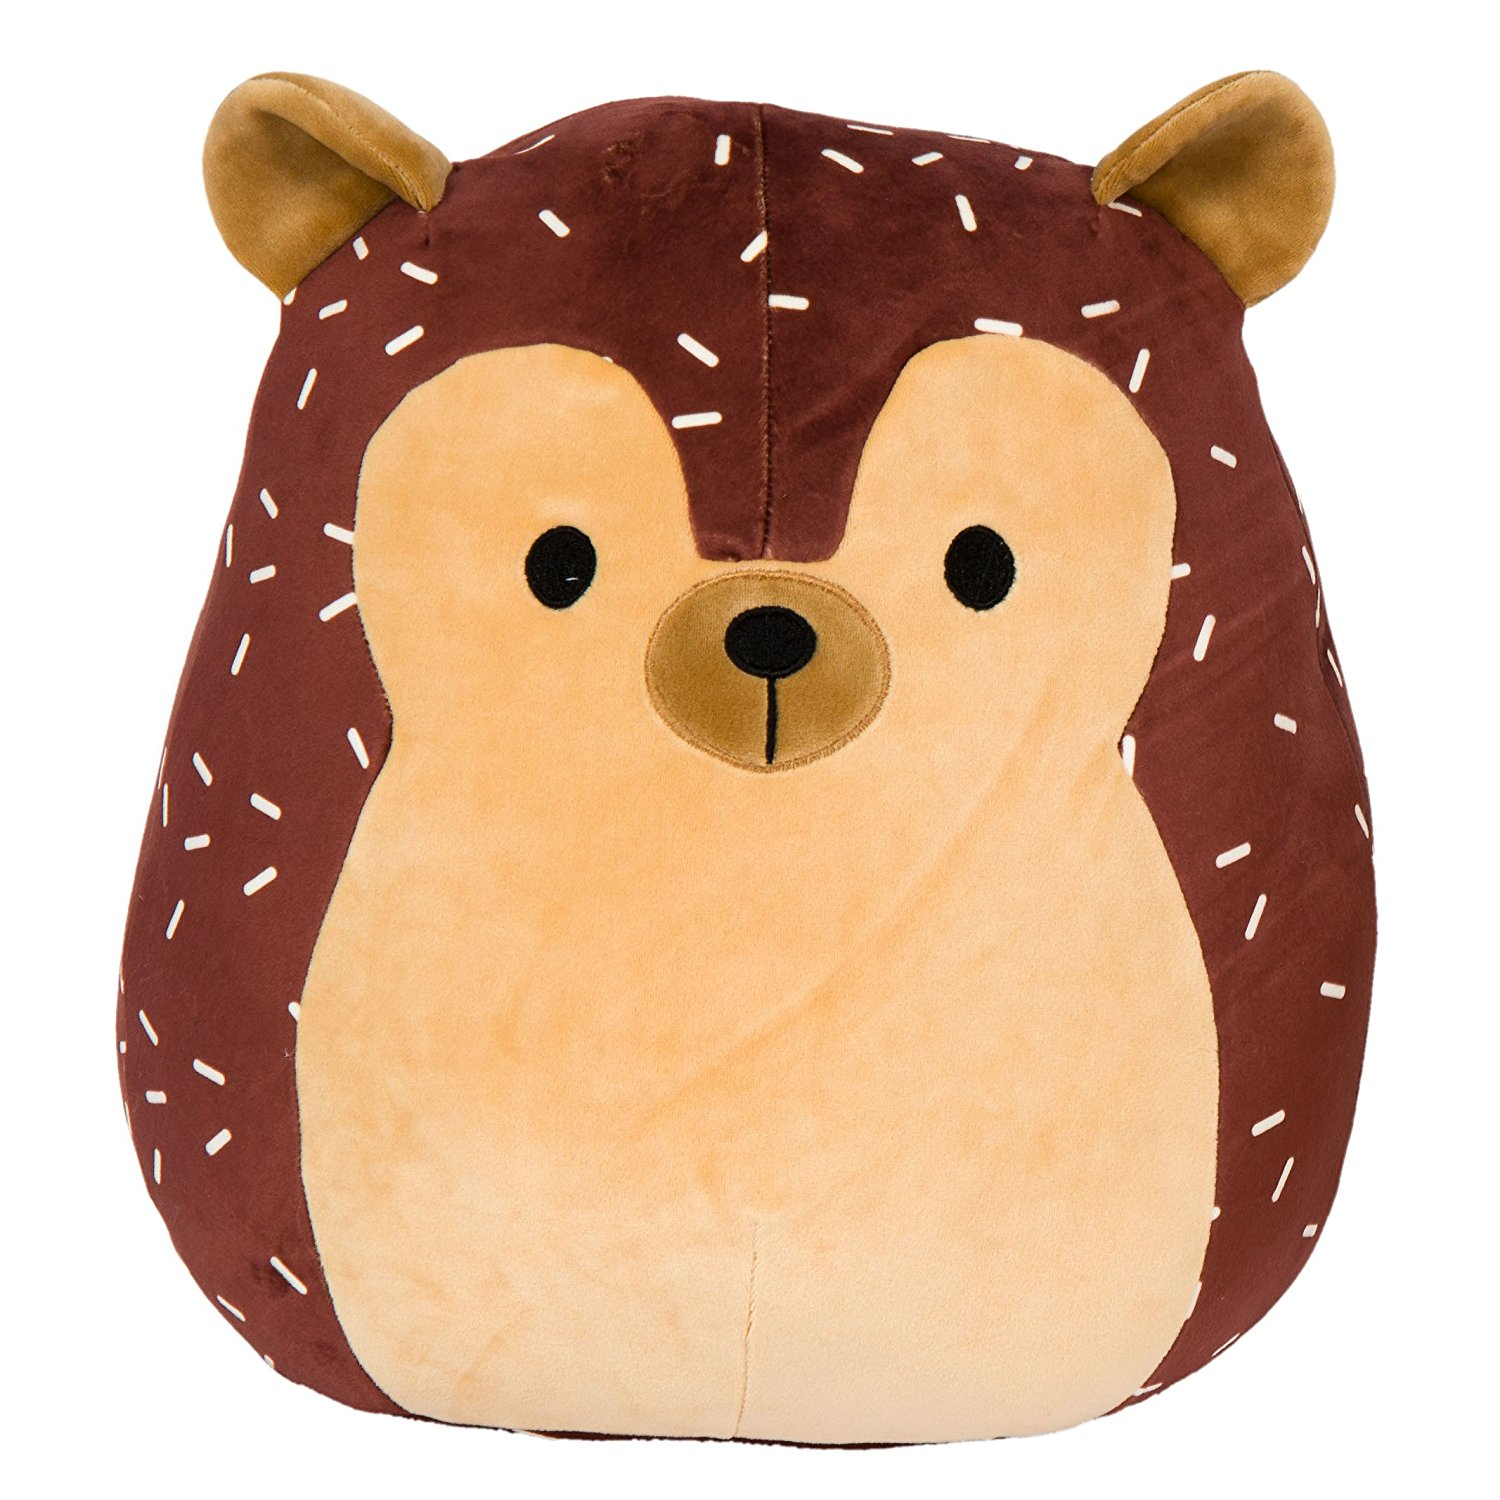 Kellytoy Squishmallow 8 Inch Hans the Hedgehog Super Soft Plush Toy